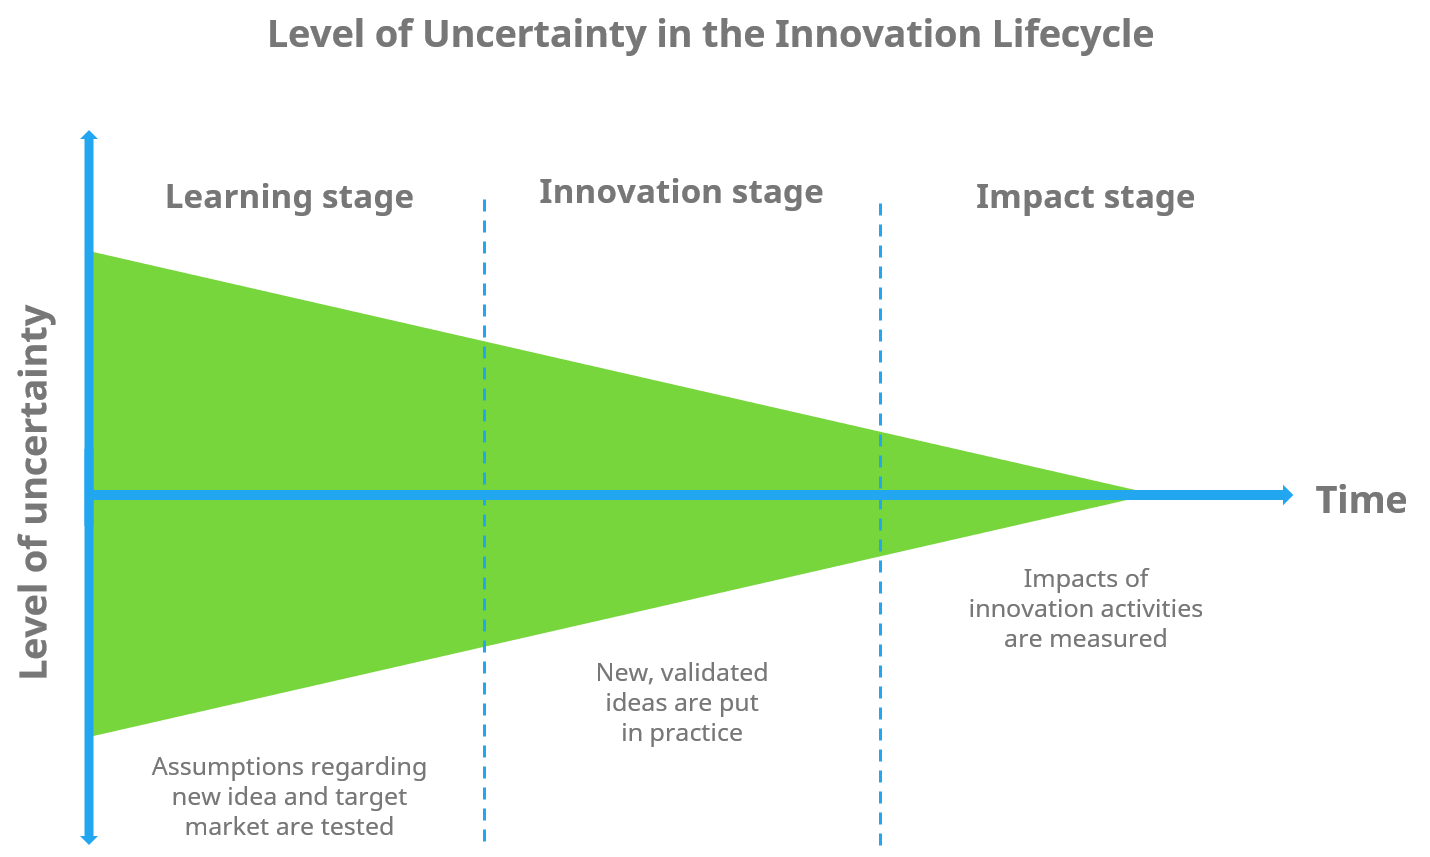 Level of uncertainty in the innovation lifecycle